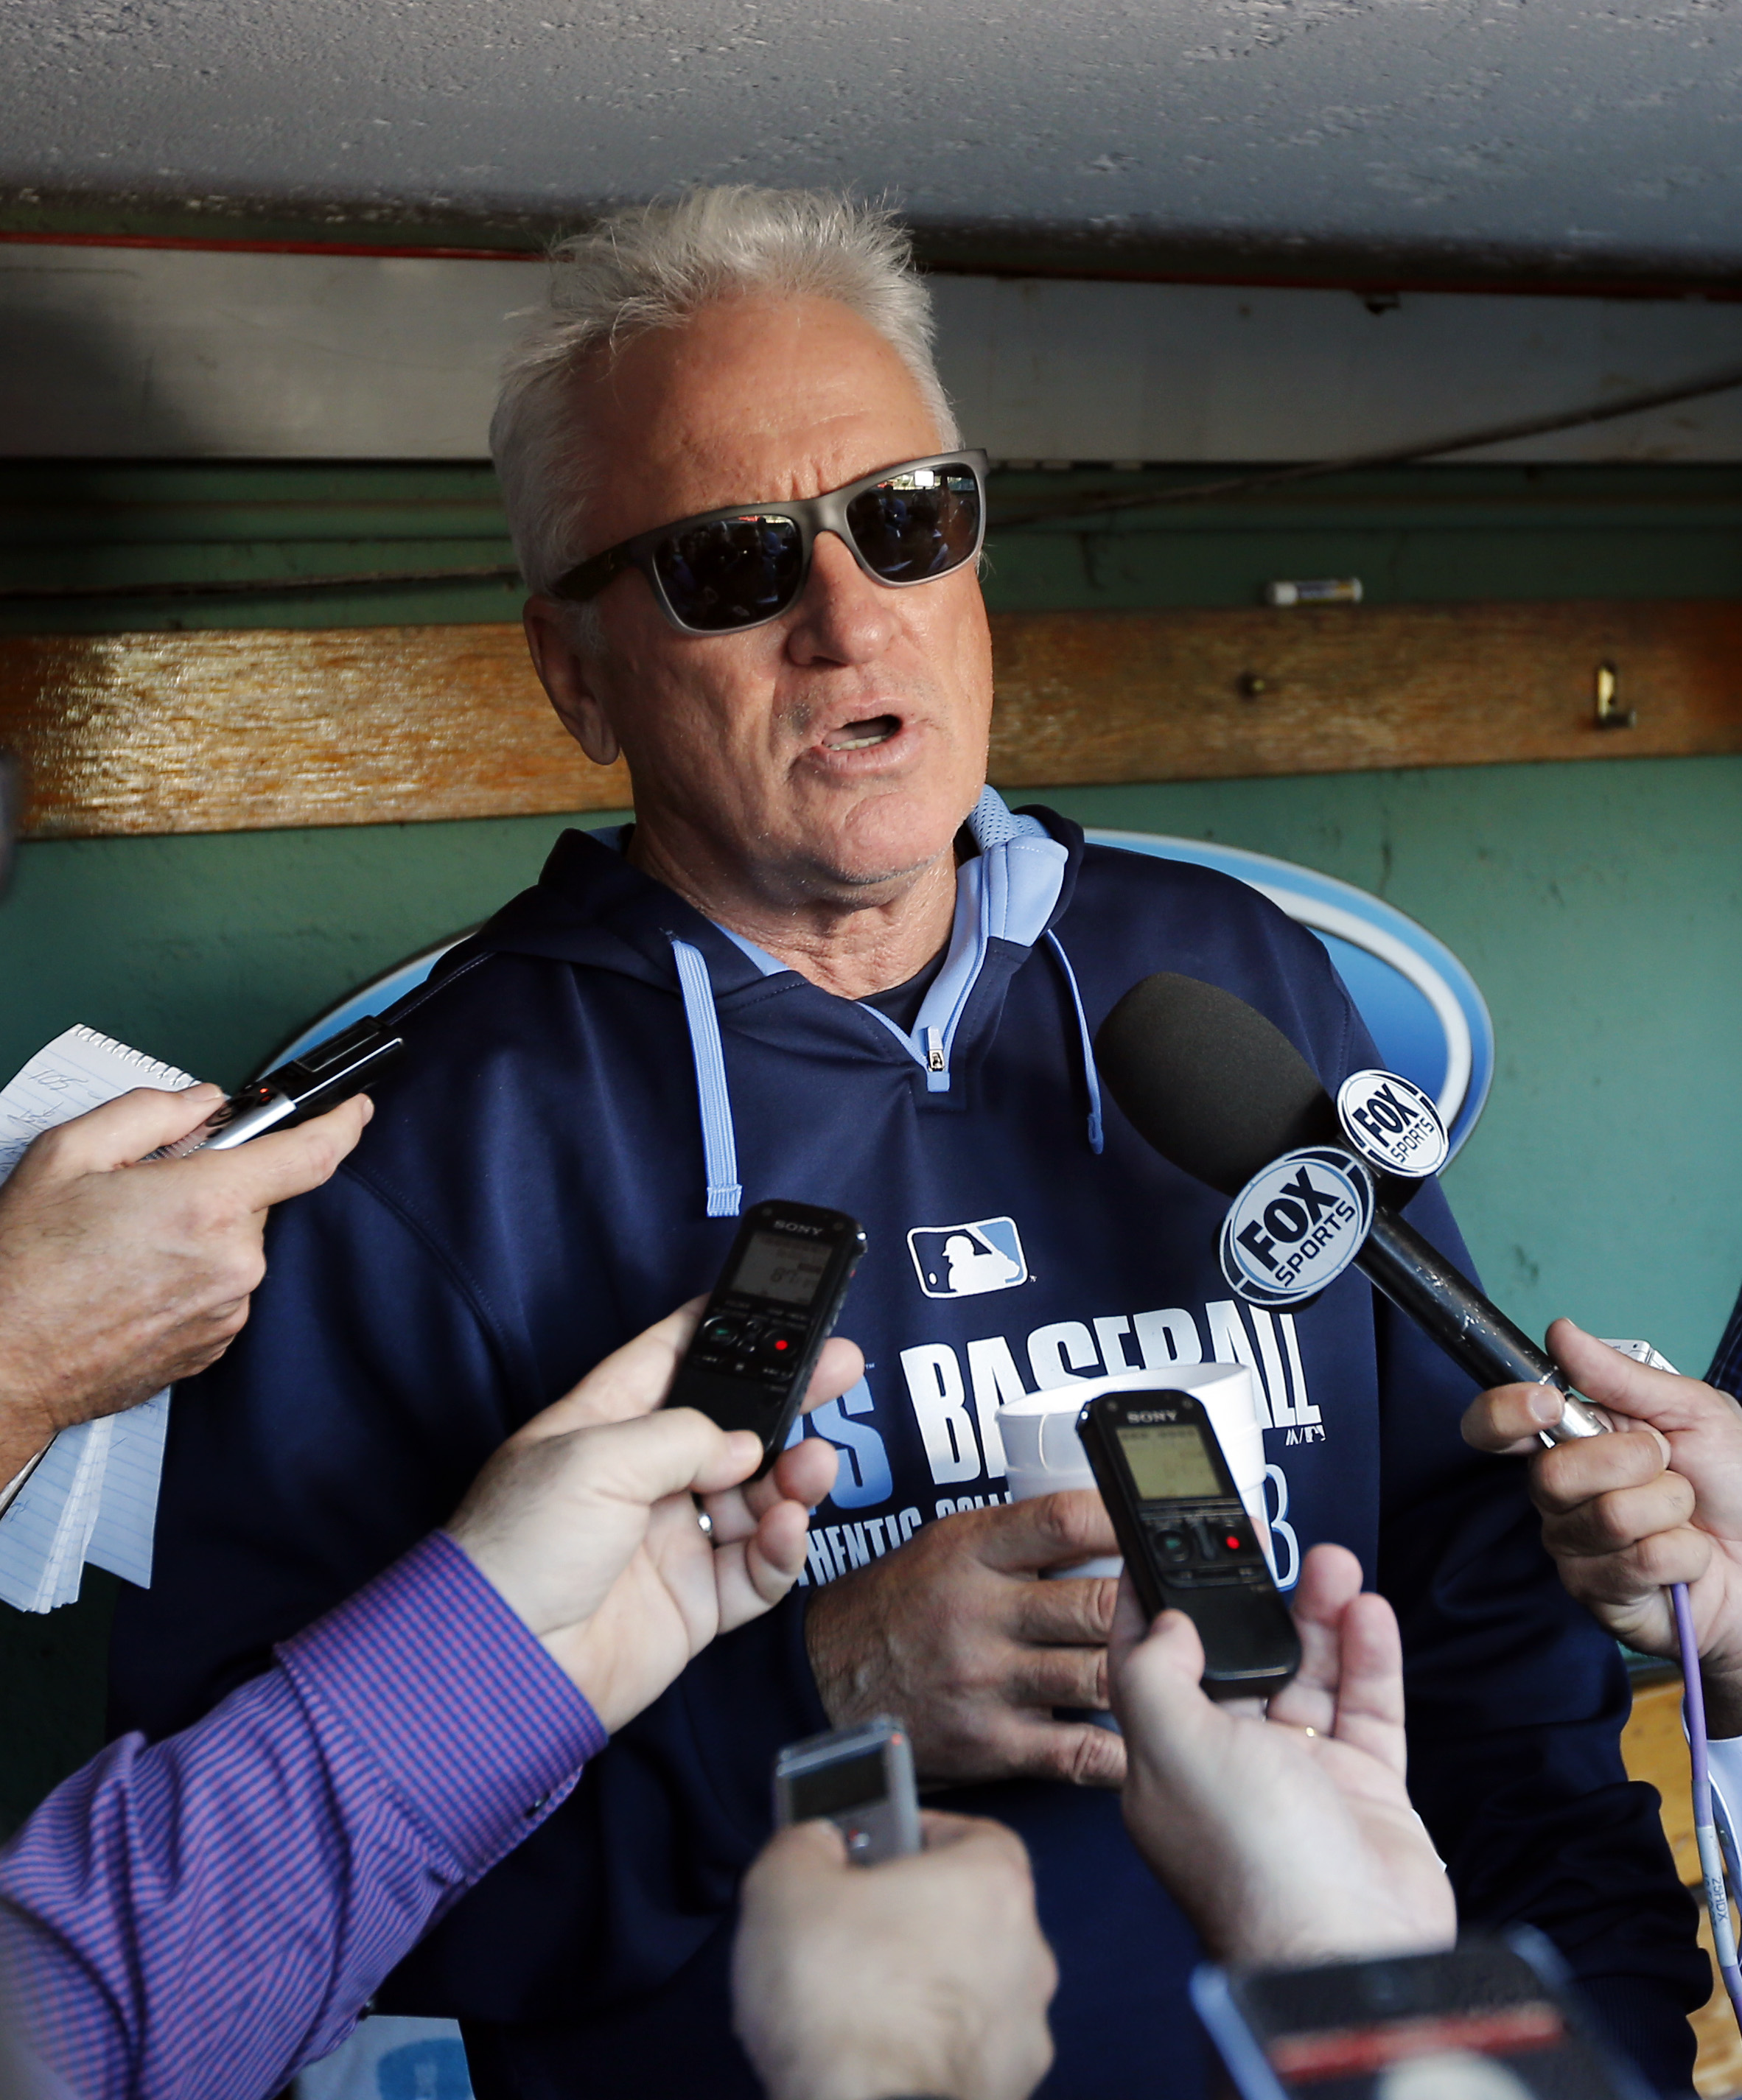 Joe Maddon won't manage Tampa Bay Rays in 2015